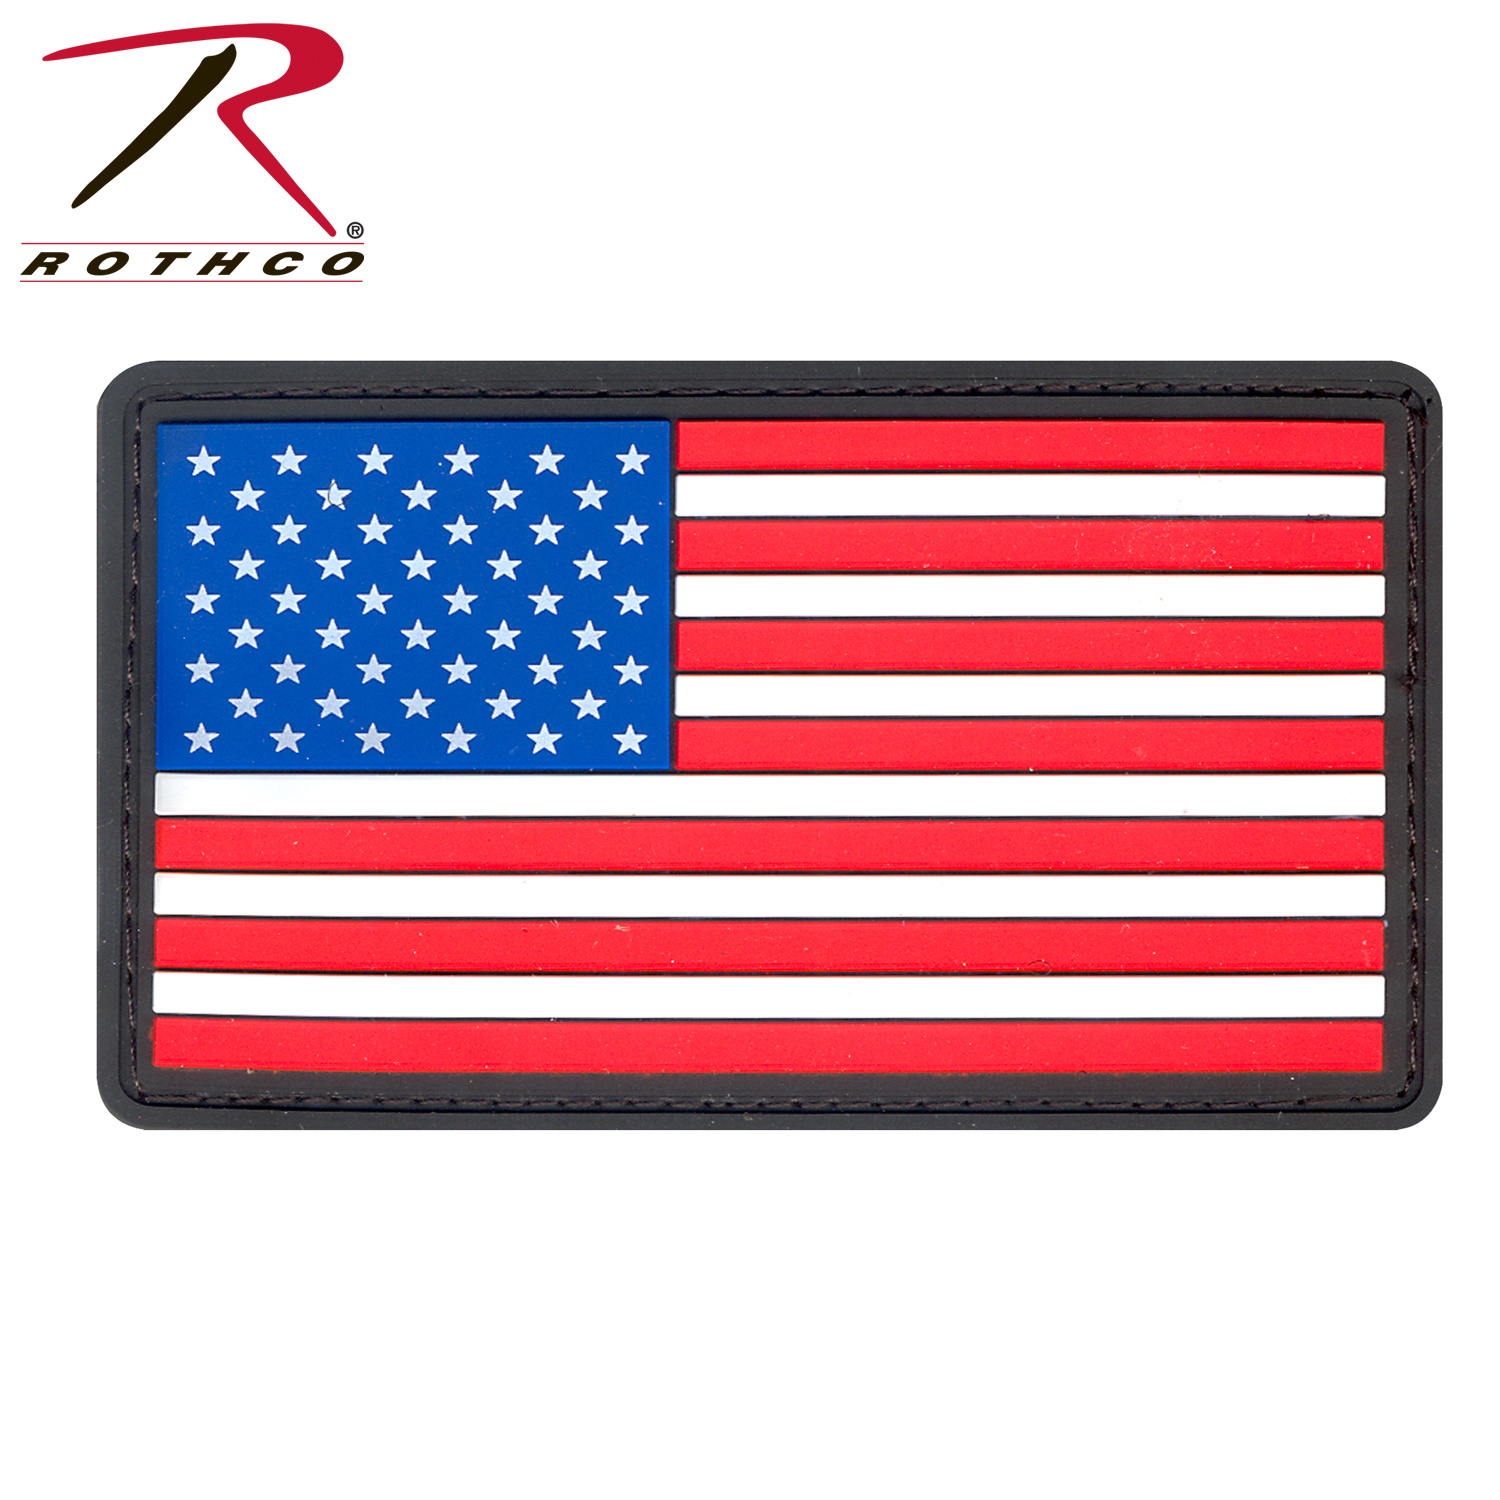 c4d0aacb047f USA Flag Patch (PVC, Velcro) Red, White & Blue